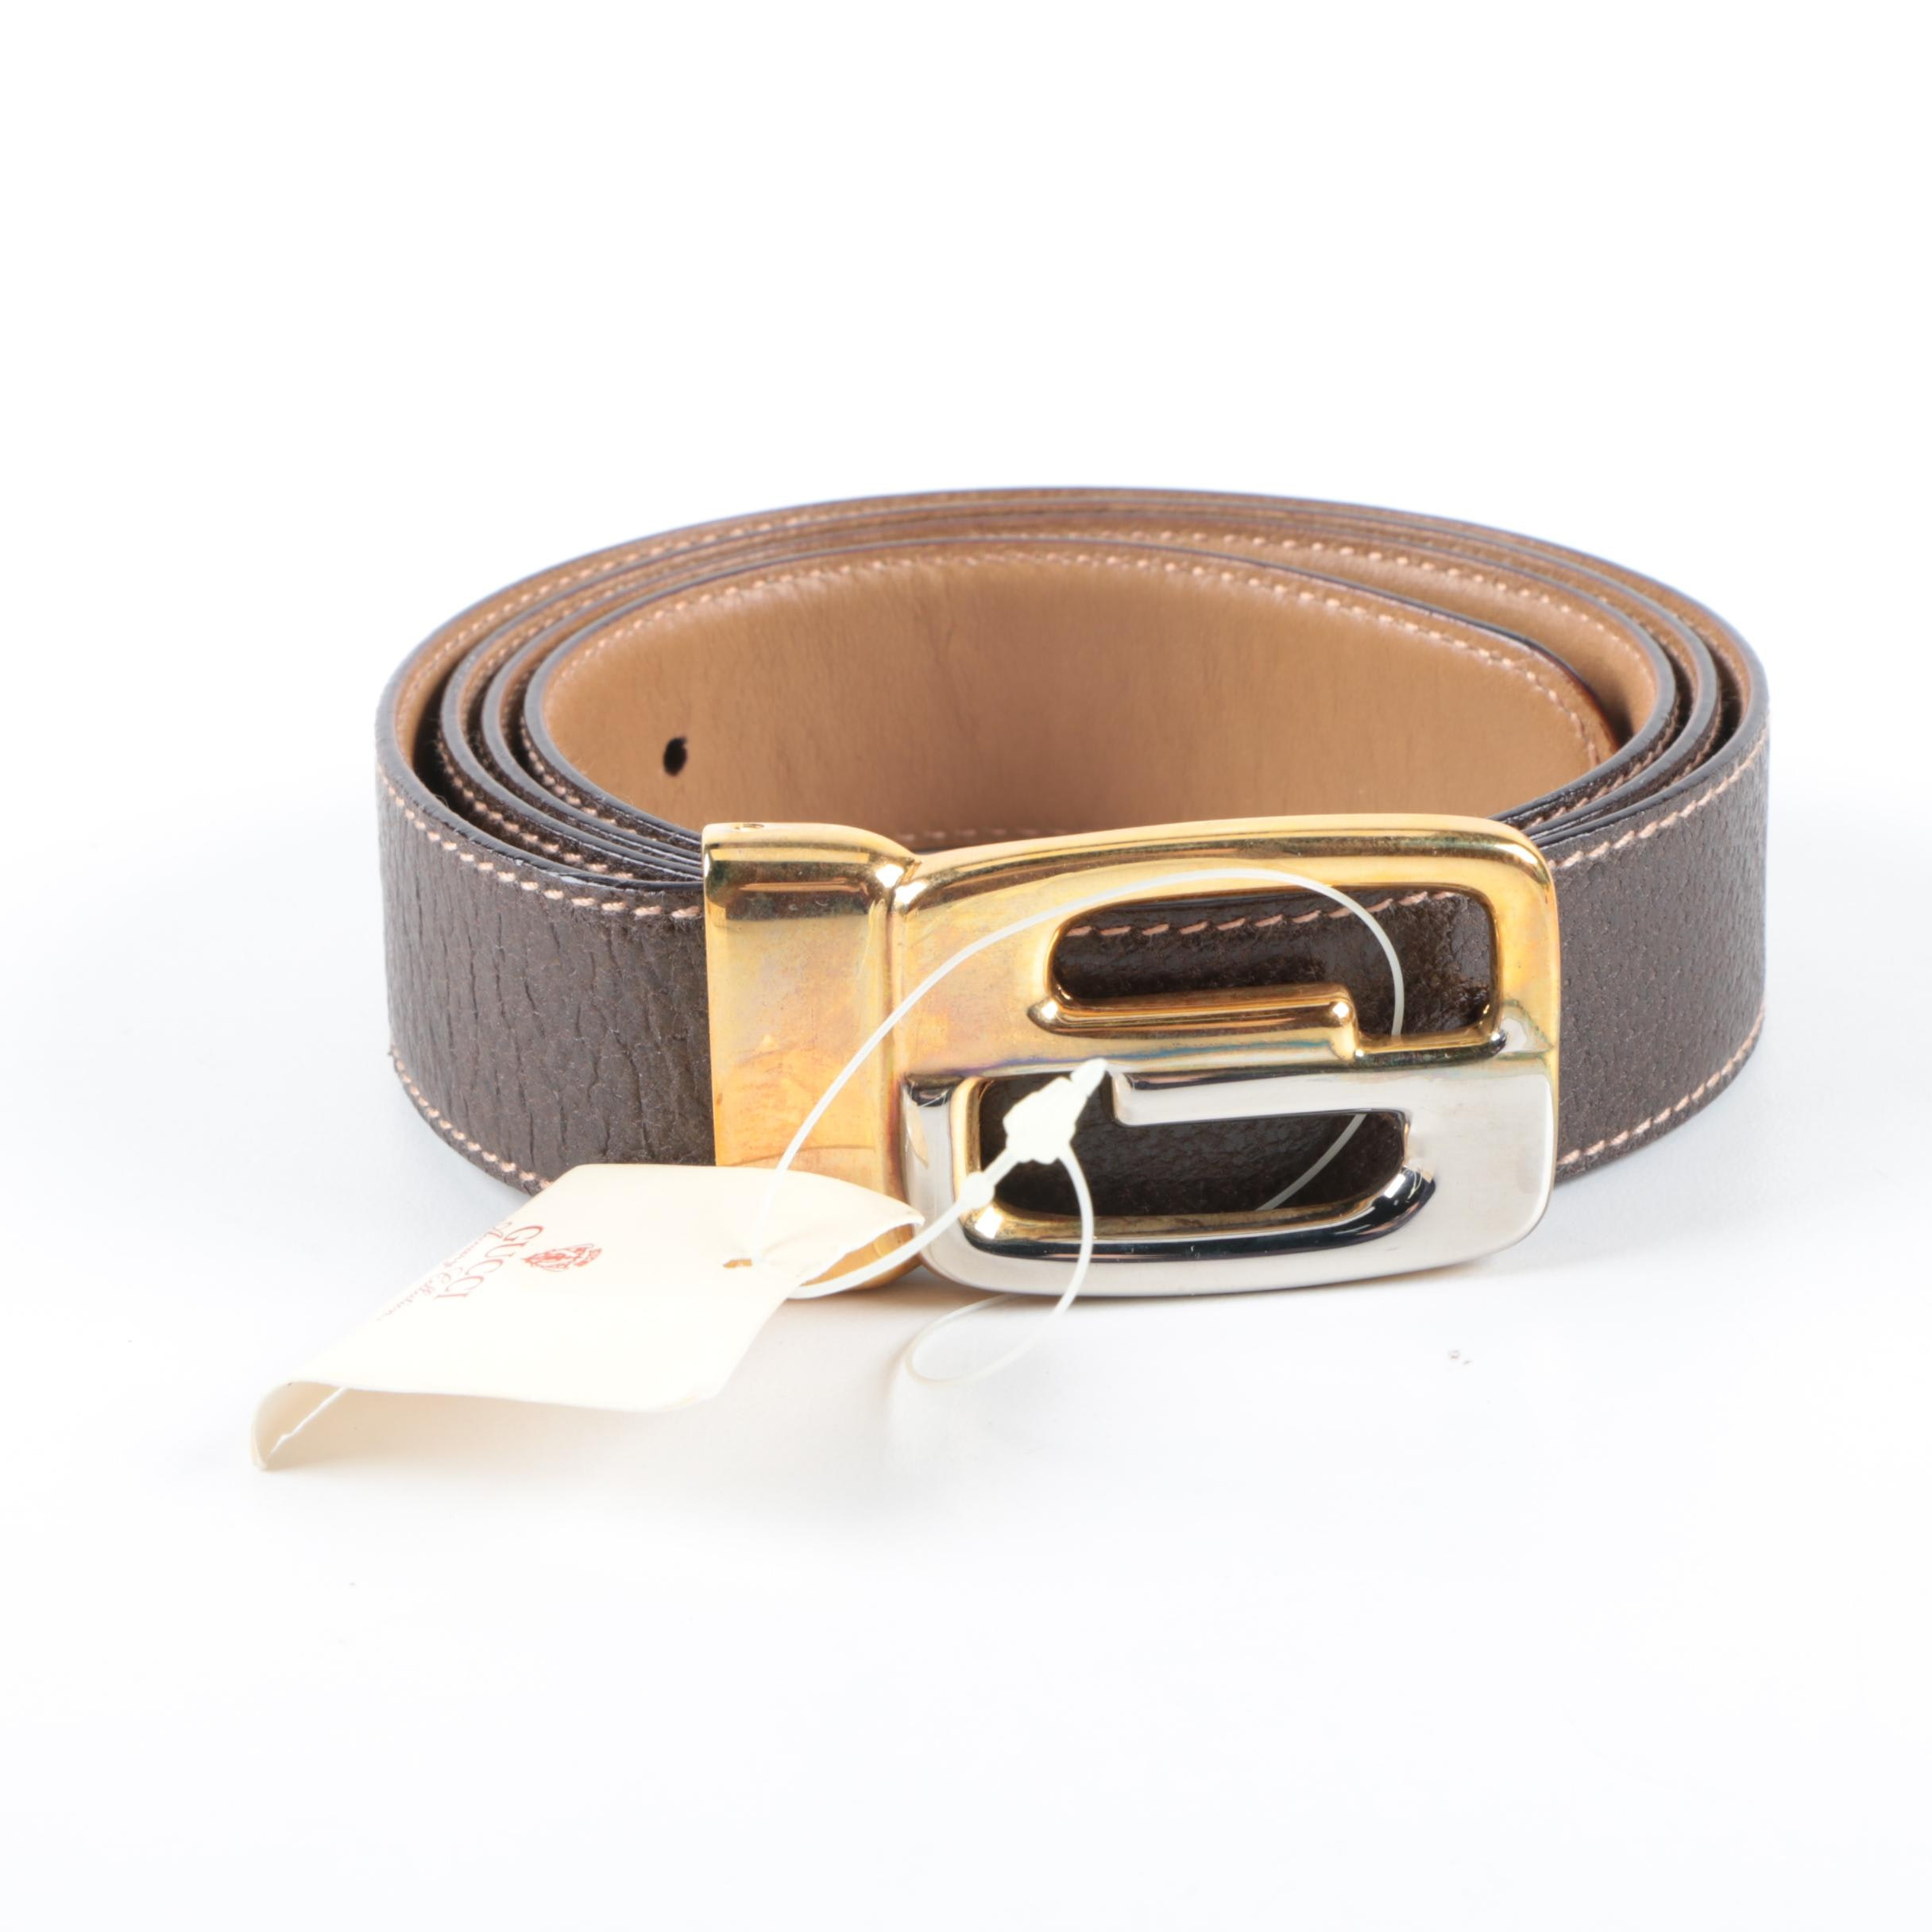 Gucci Leather Belt with Two Tone GG Logo Buckle